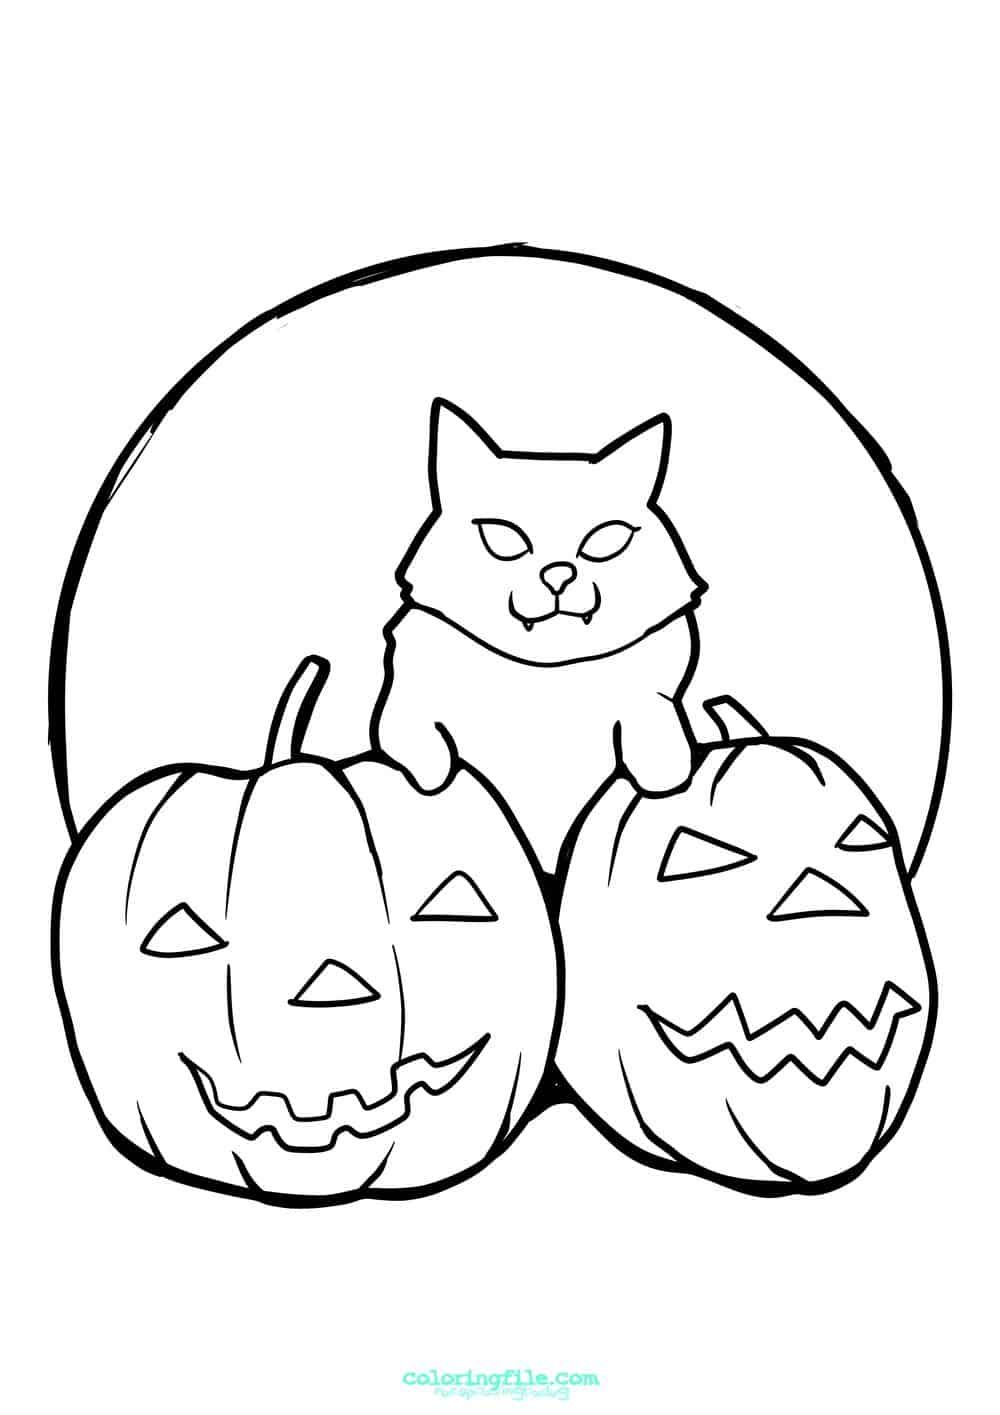 Halloween Cat On Pumpkins Coloring Pages Pumpkin Coloring Pages